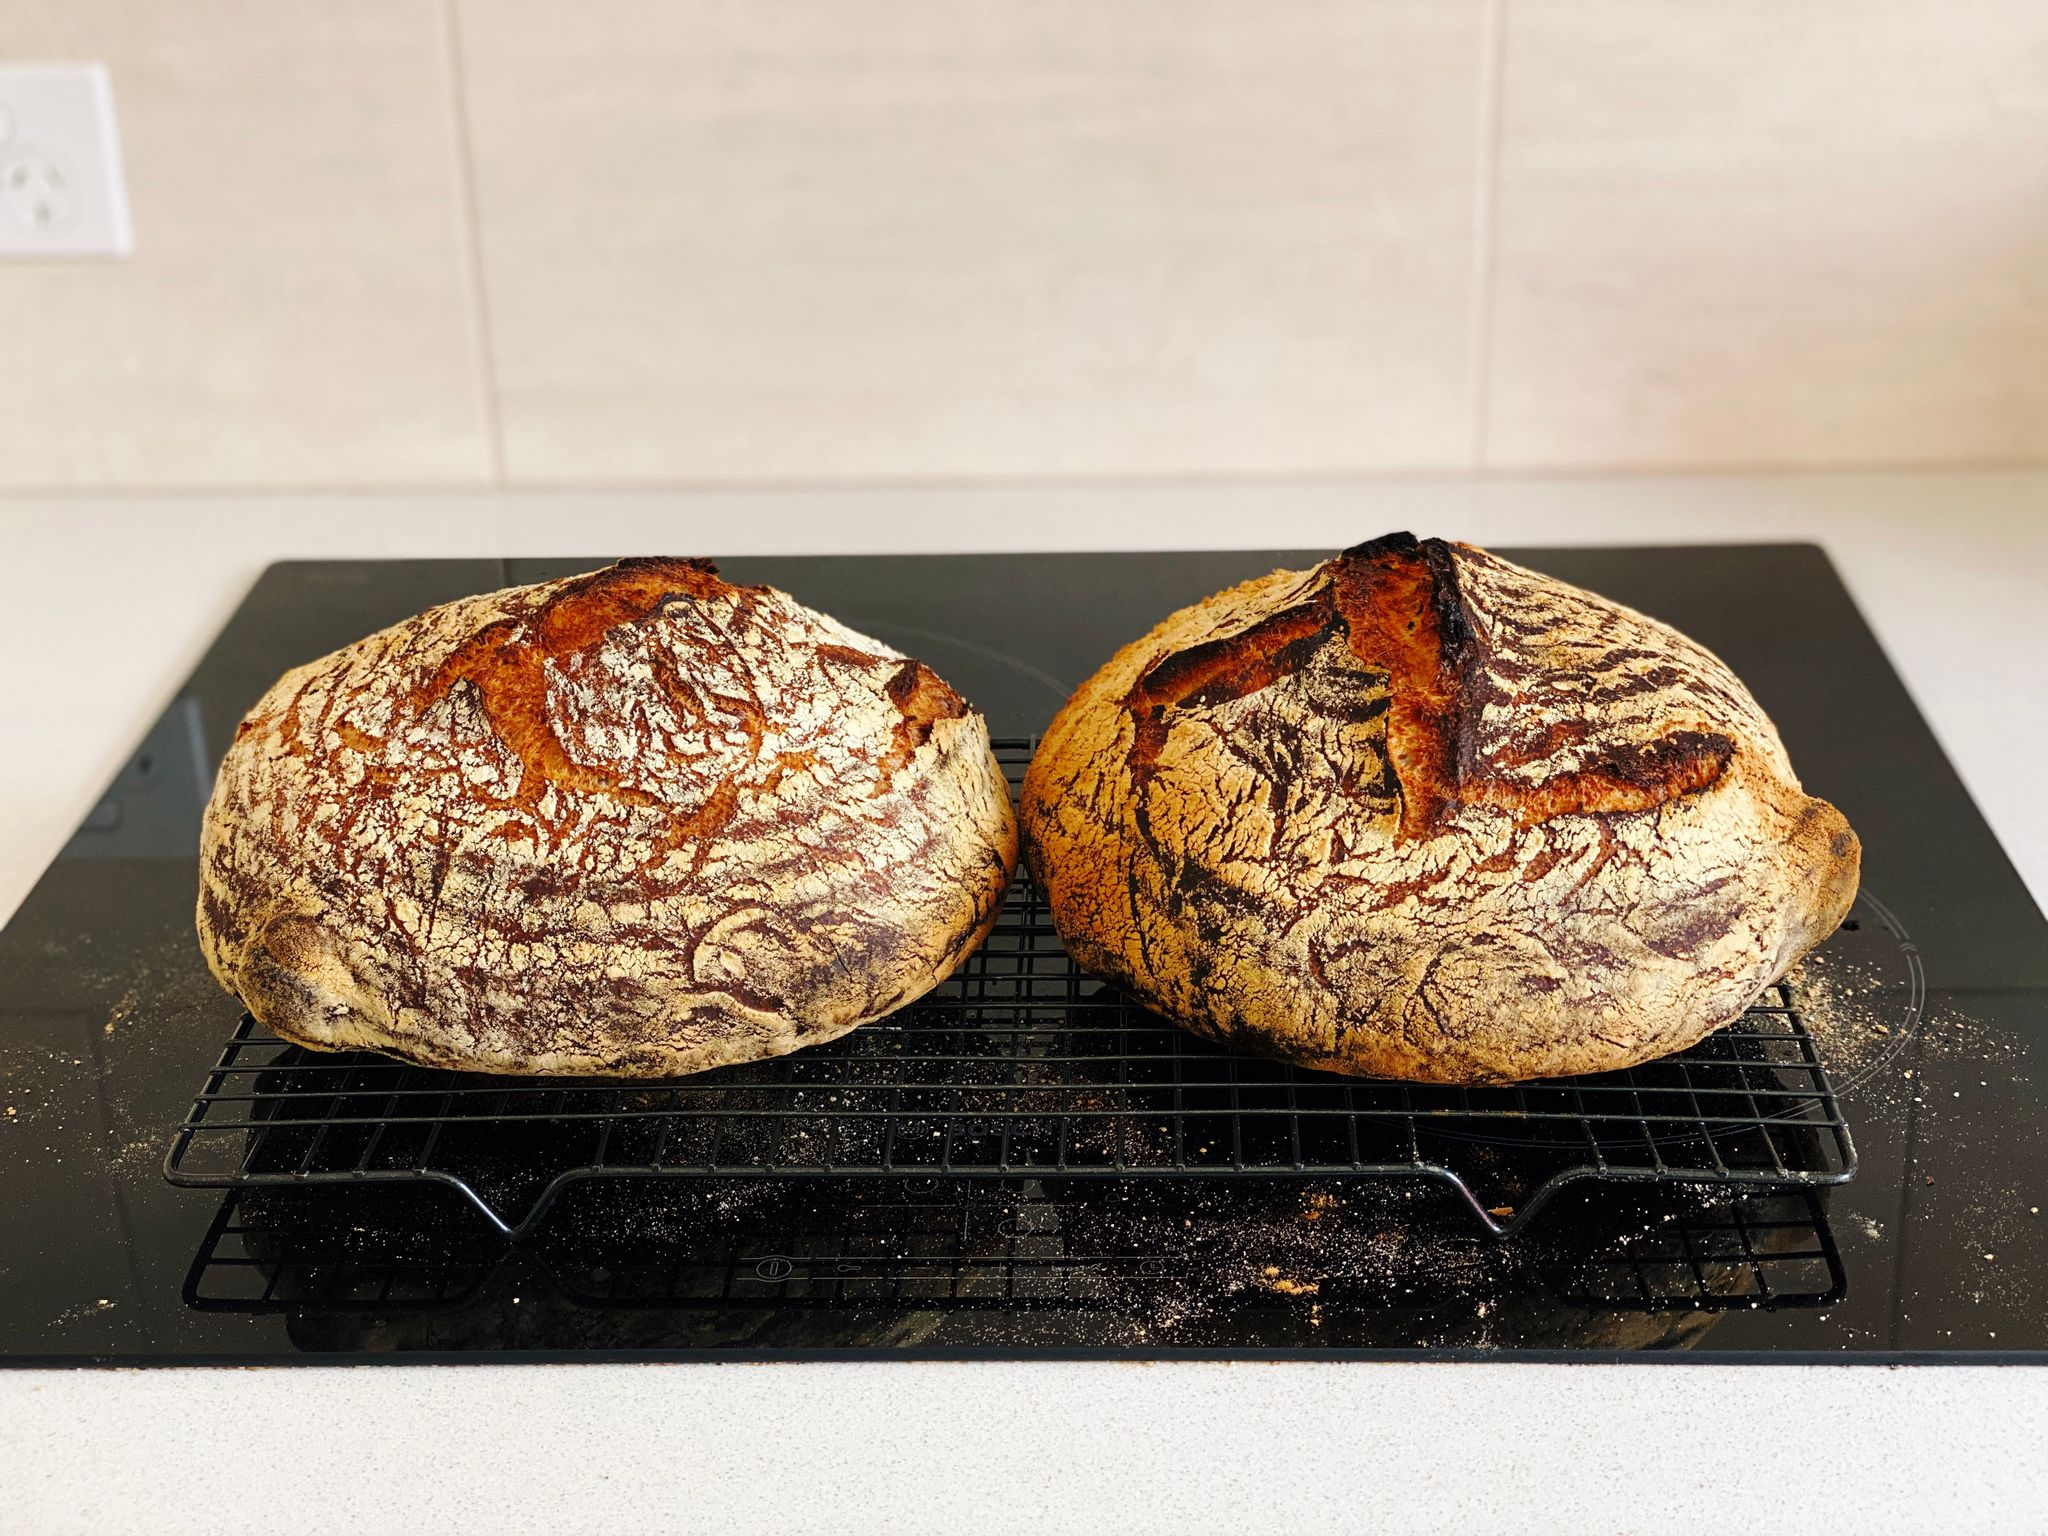 A photo of two round dark brown loaves of bread sitting on a cooling rack.